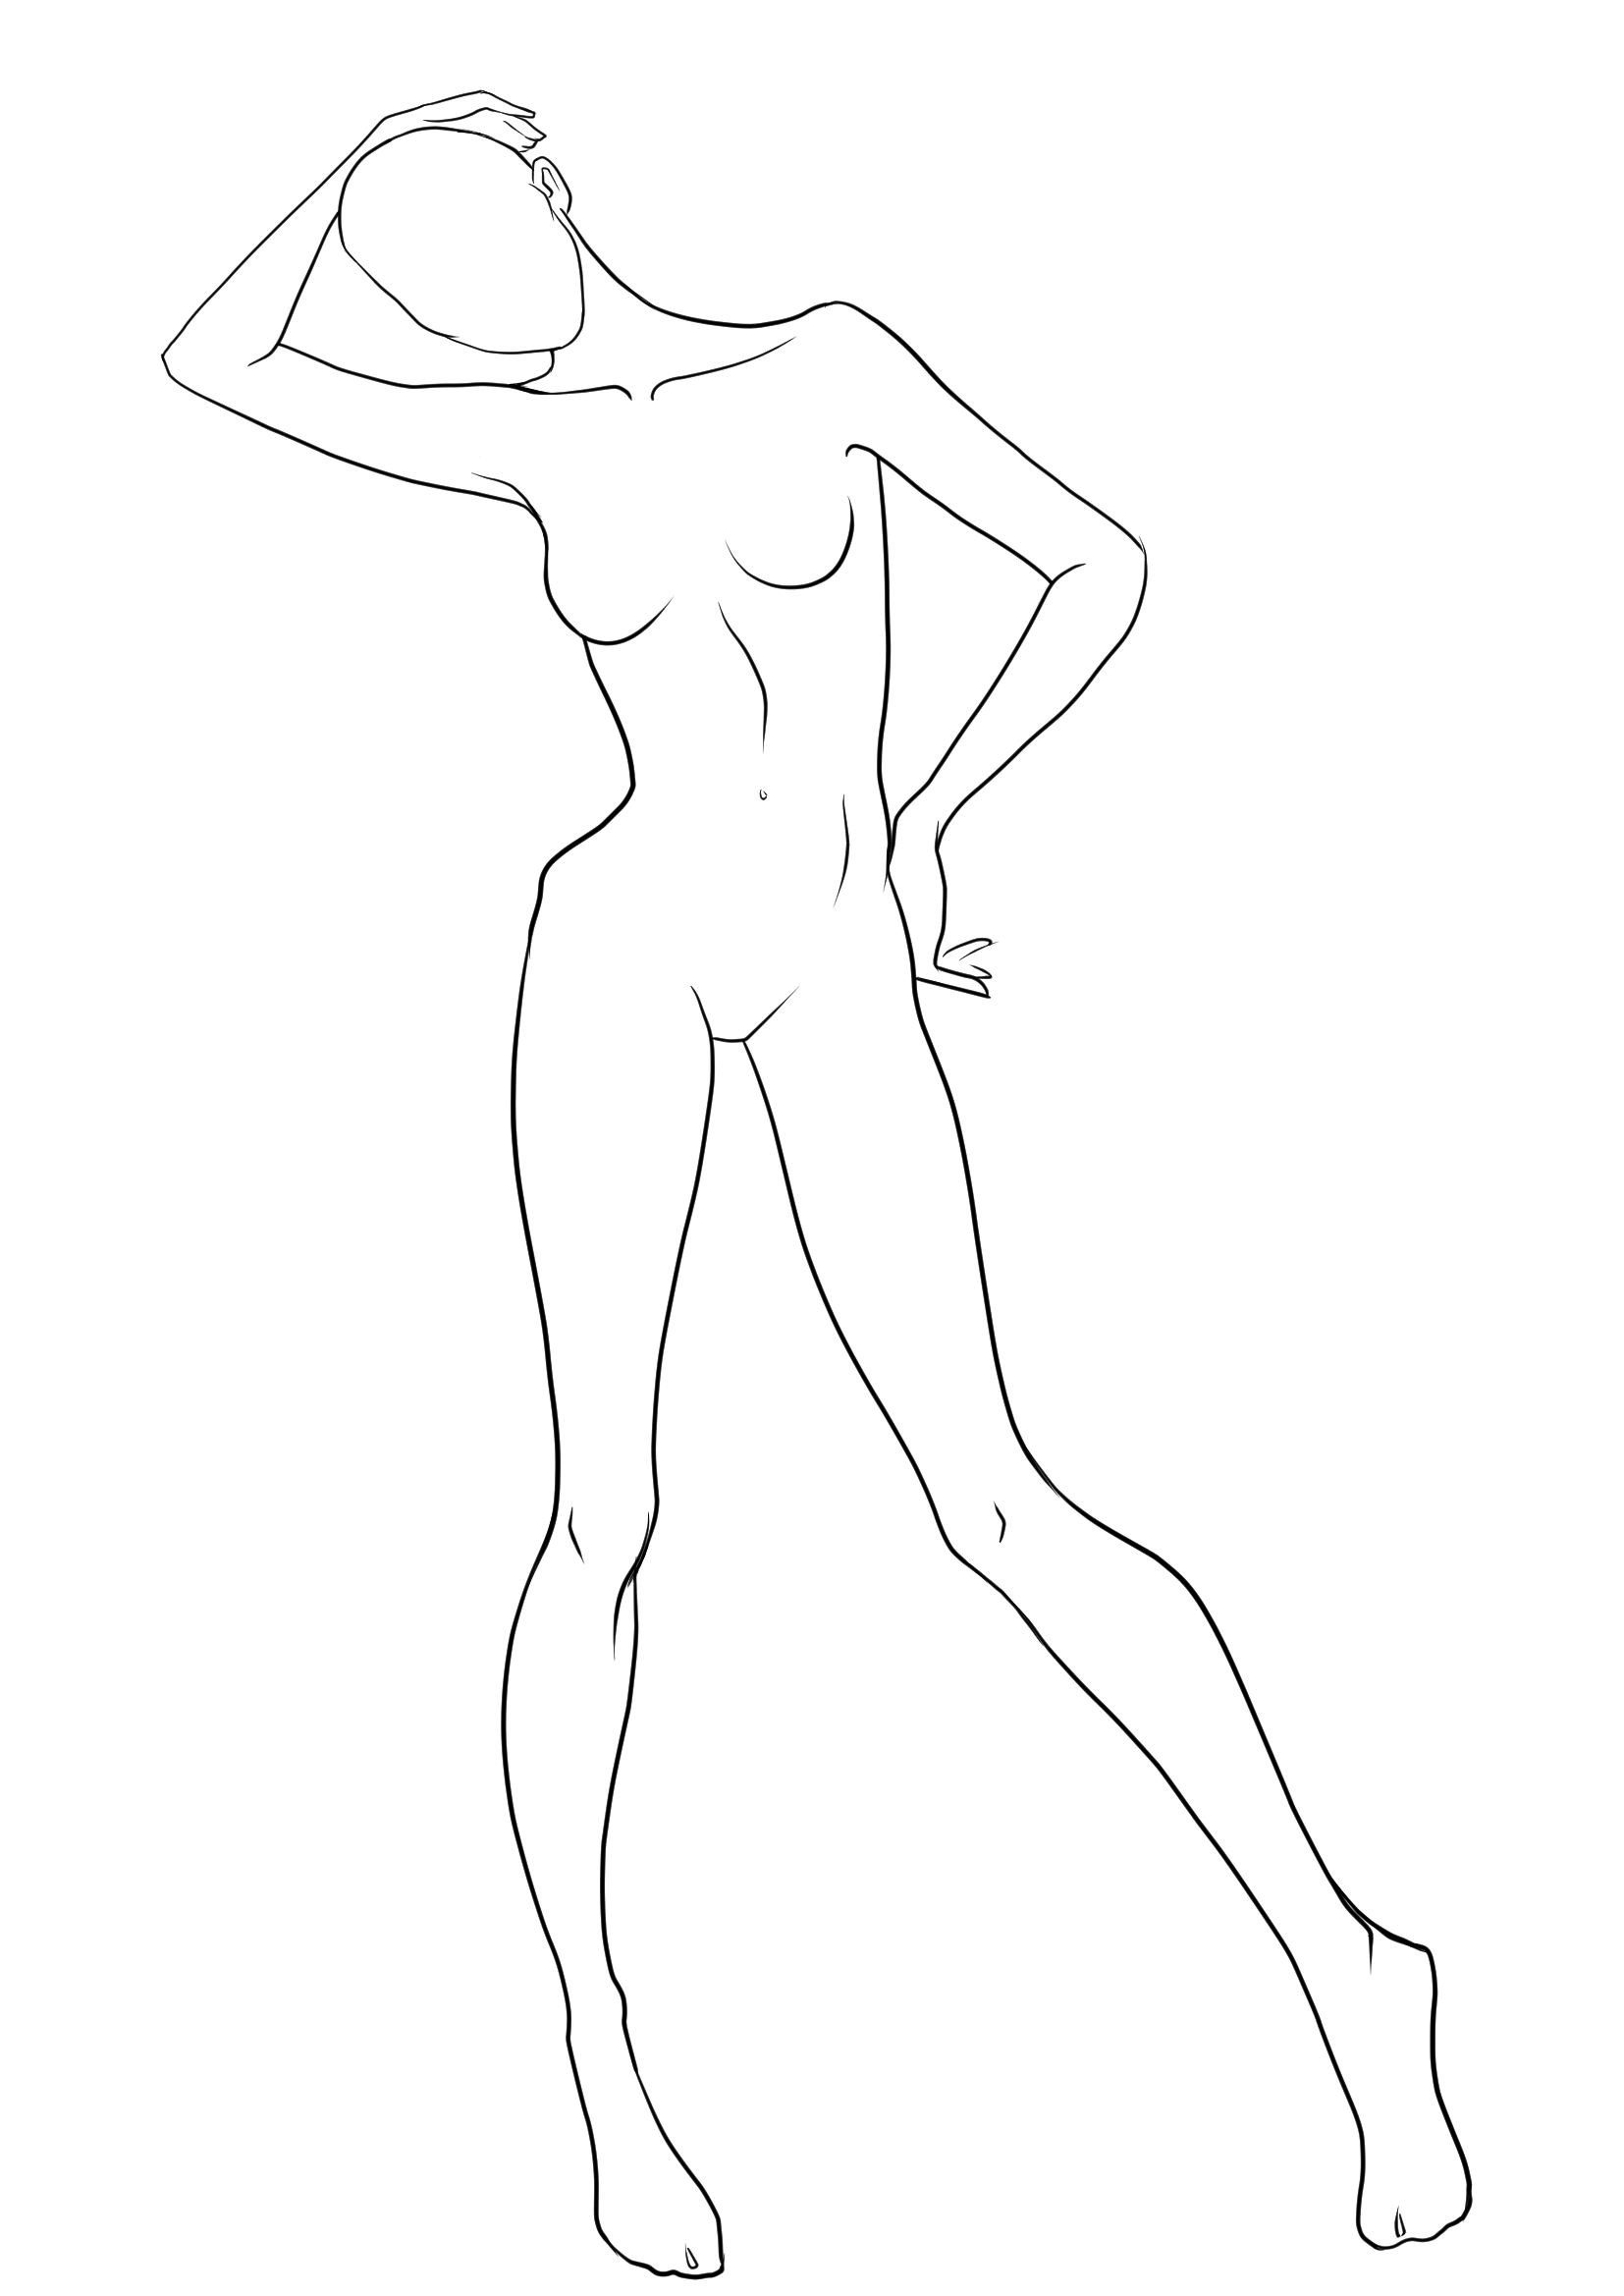 human body drawing templates at getdrawings com free for personal